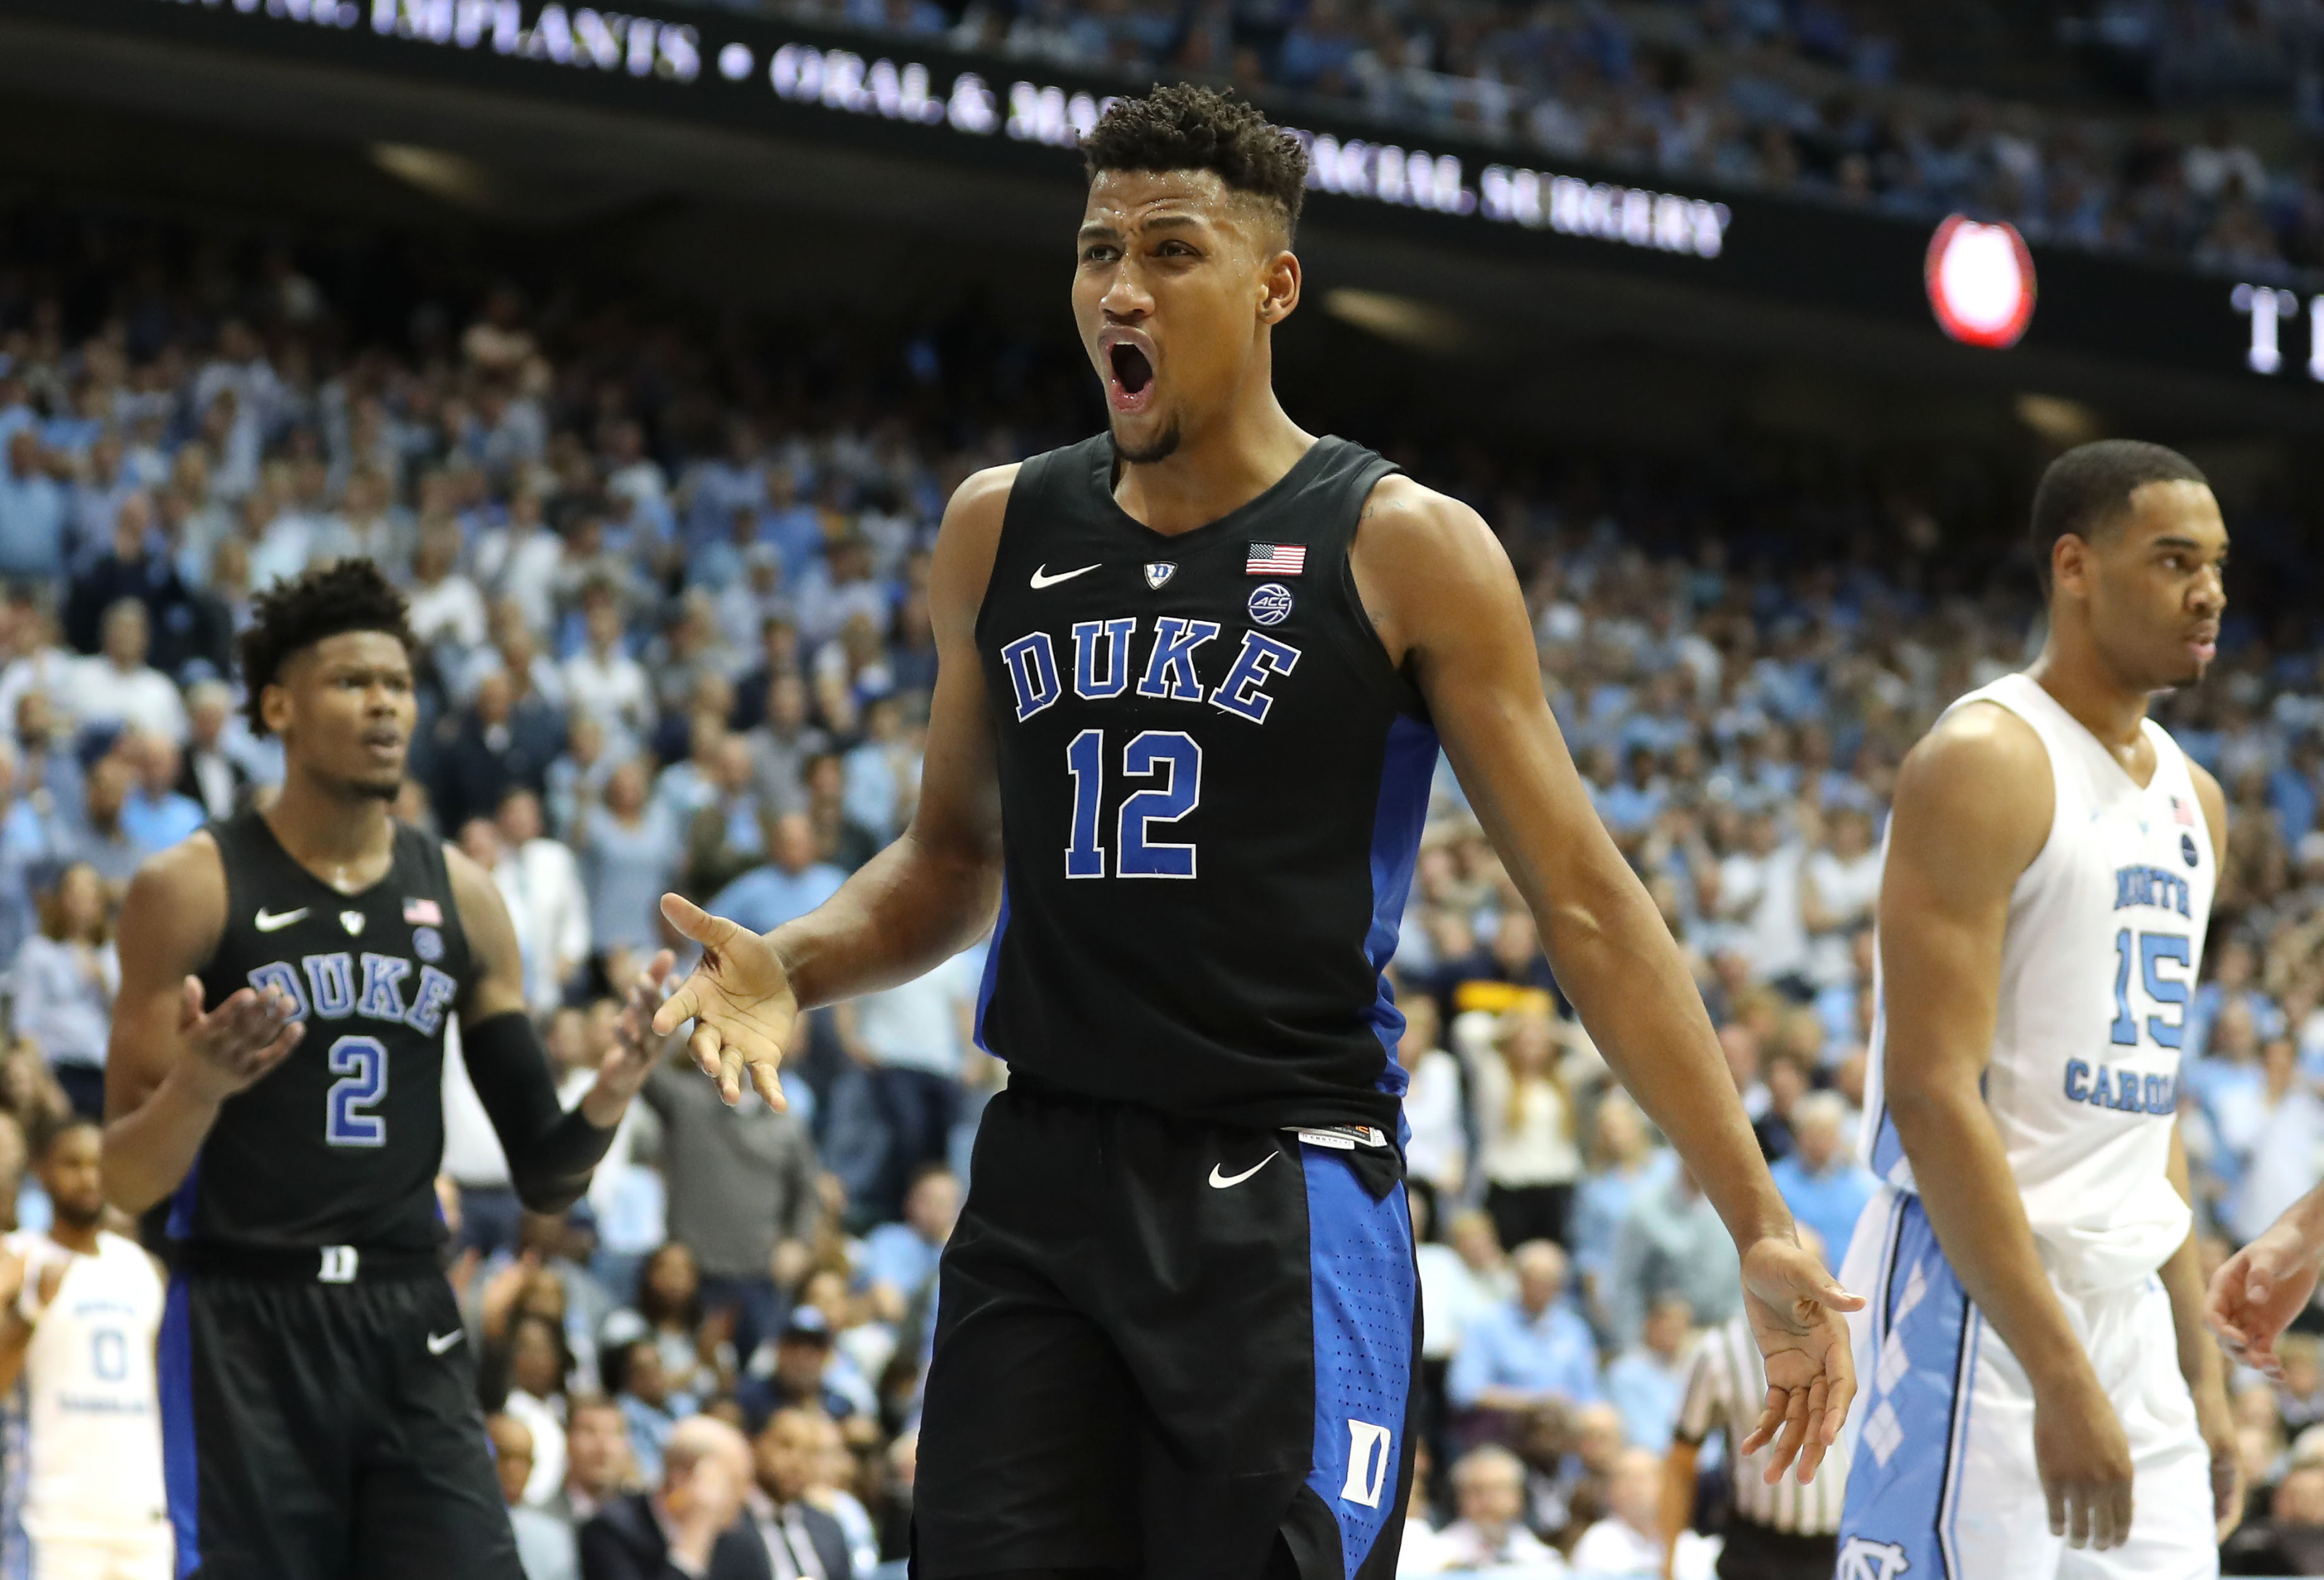 Duke Basketball: Javin DeLaurier does not get an invite to NBA Combine